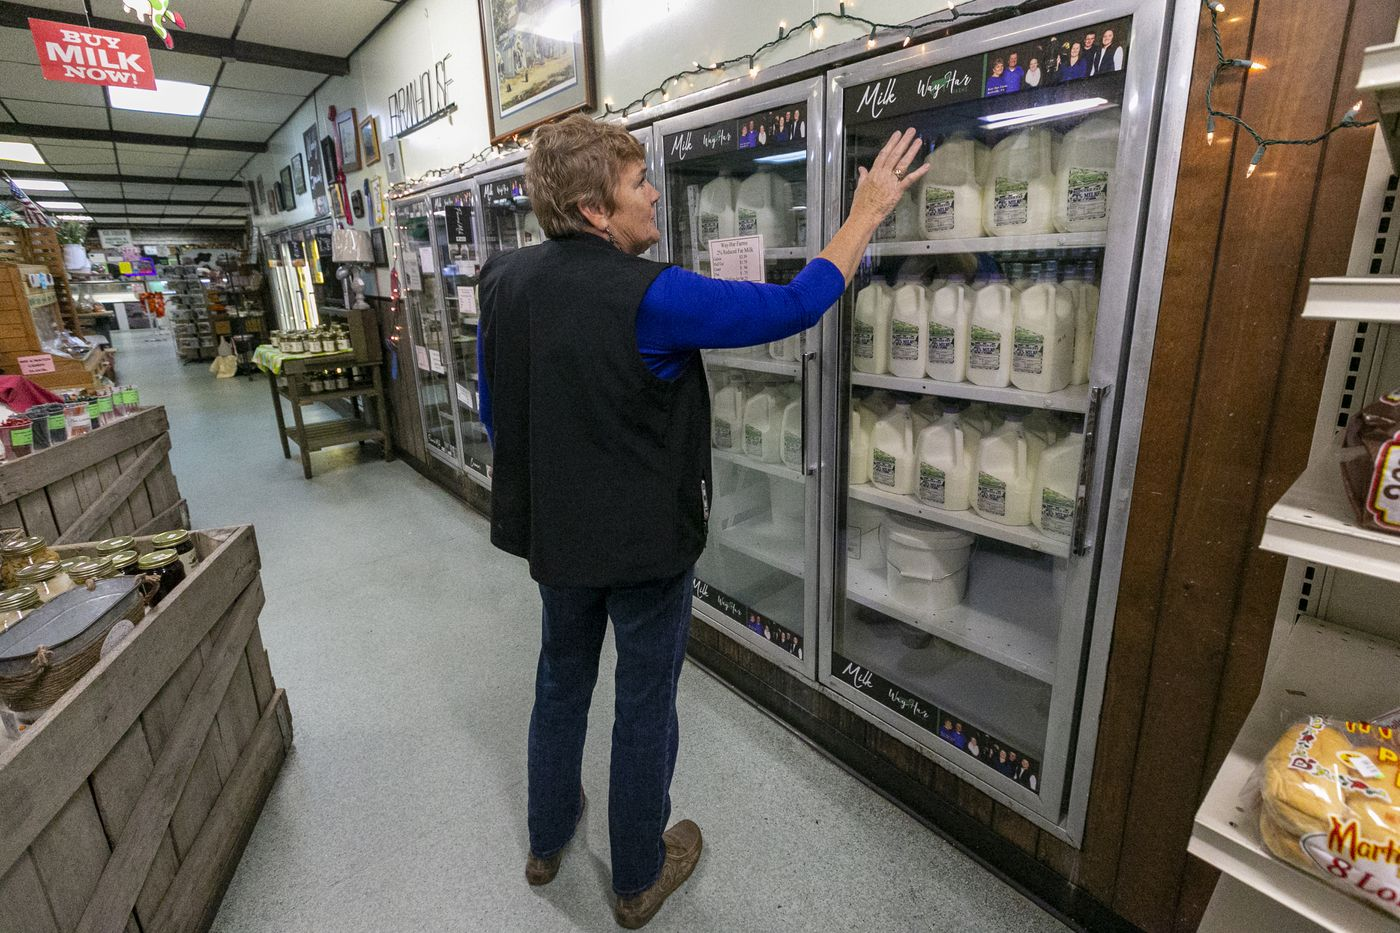 Dairy farmer Lolly Lesher in the dairy section at her Way-Har Farm Market in Bernville, Berks County. She doesn't sell plant-based alternatives such as almond and oat milk, and believes they don't belong on the same shelves as dairy products.